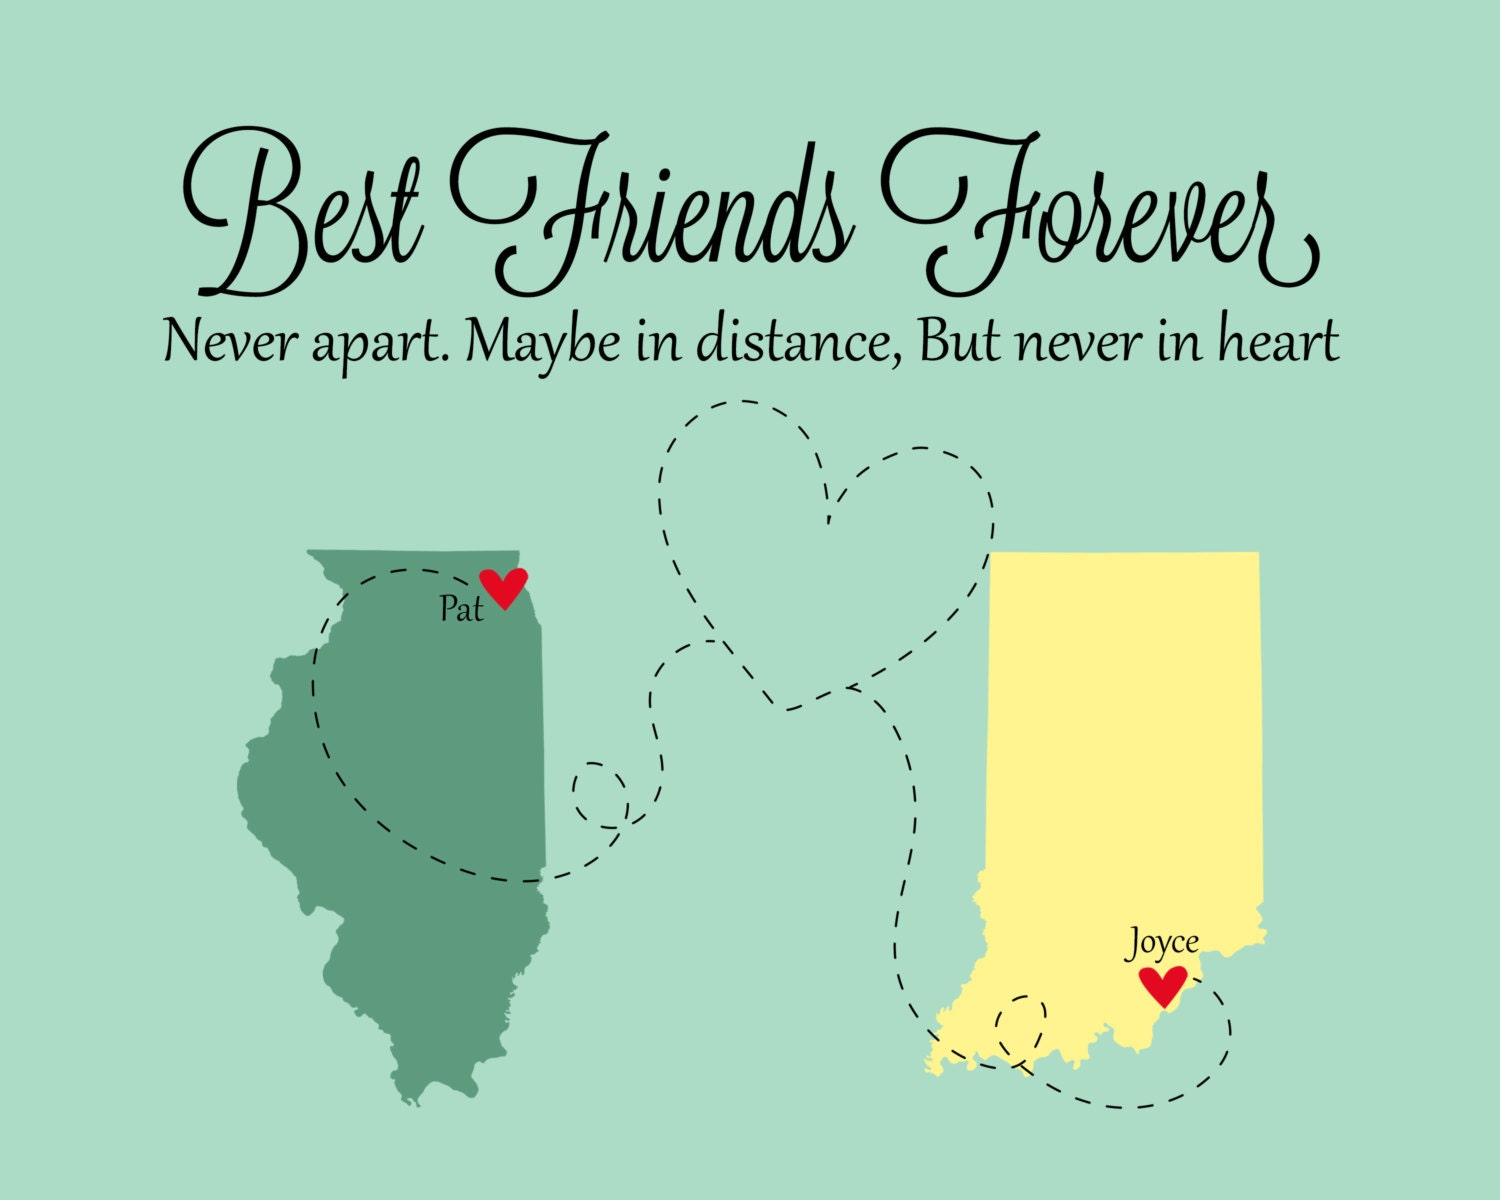 Quotes About Friendship Distance Best Friends Christmas Gifts Best Friends Best Friend Long